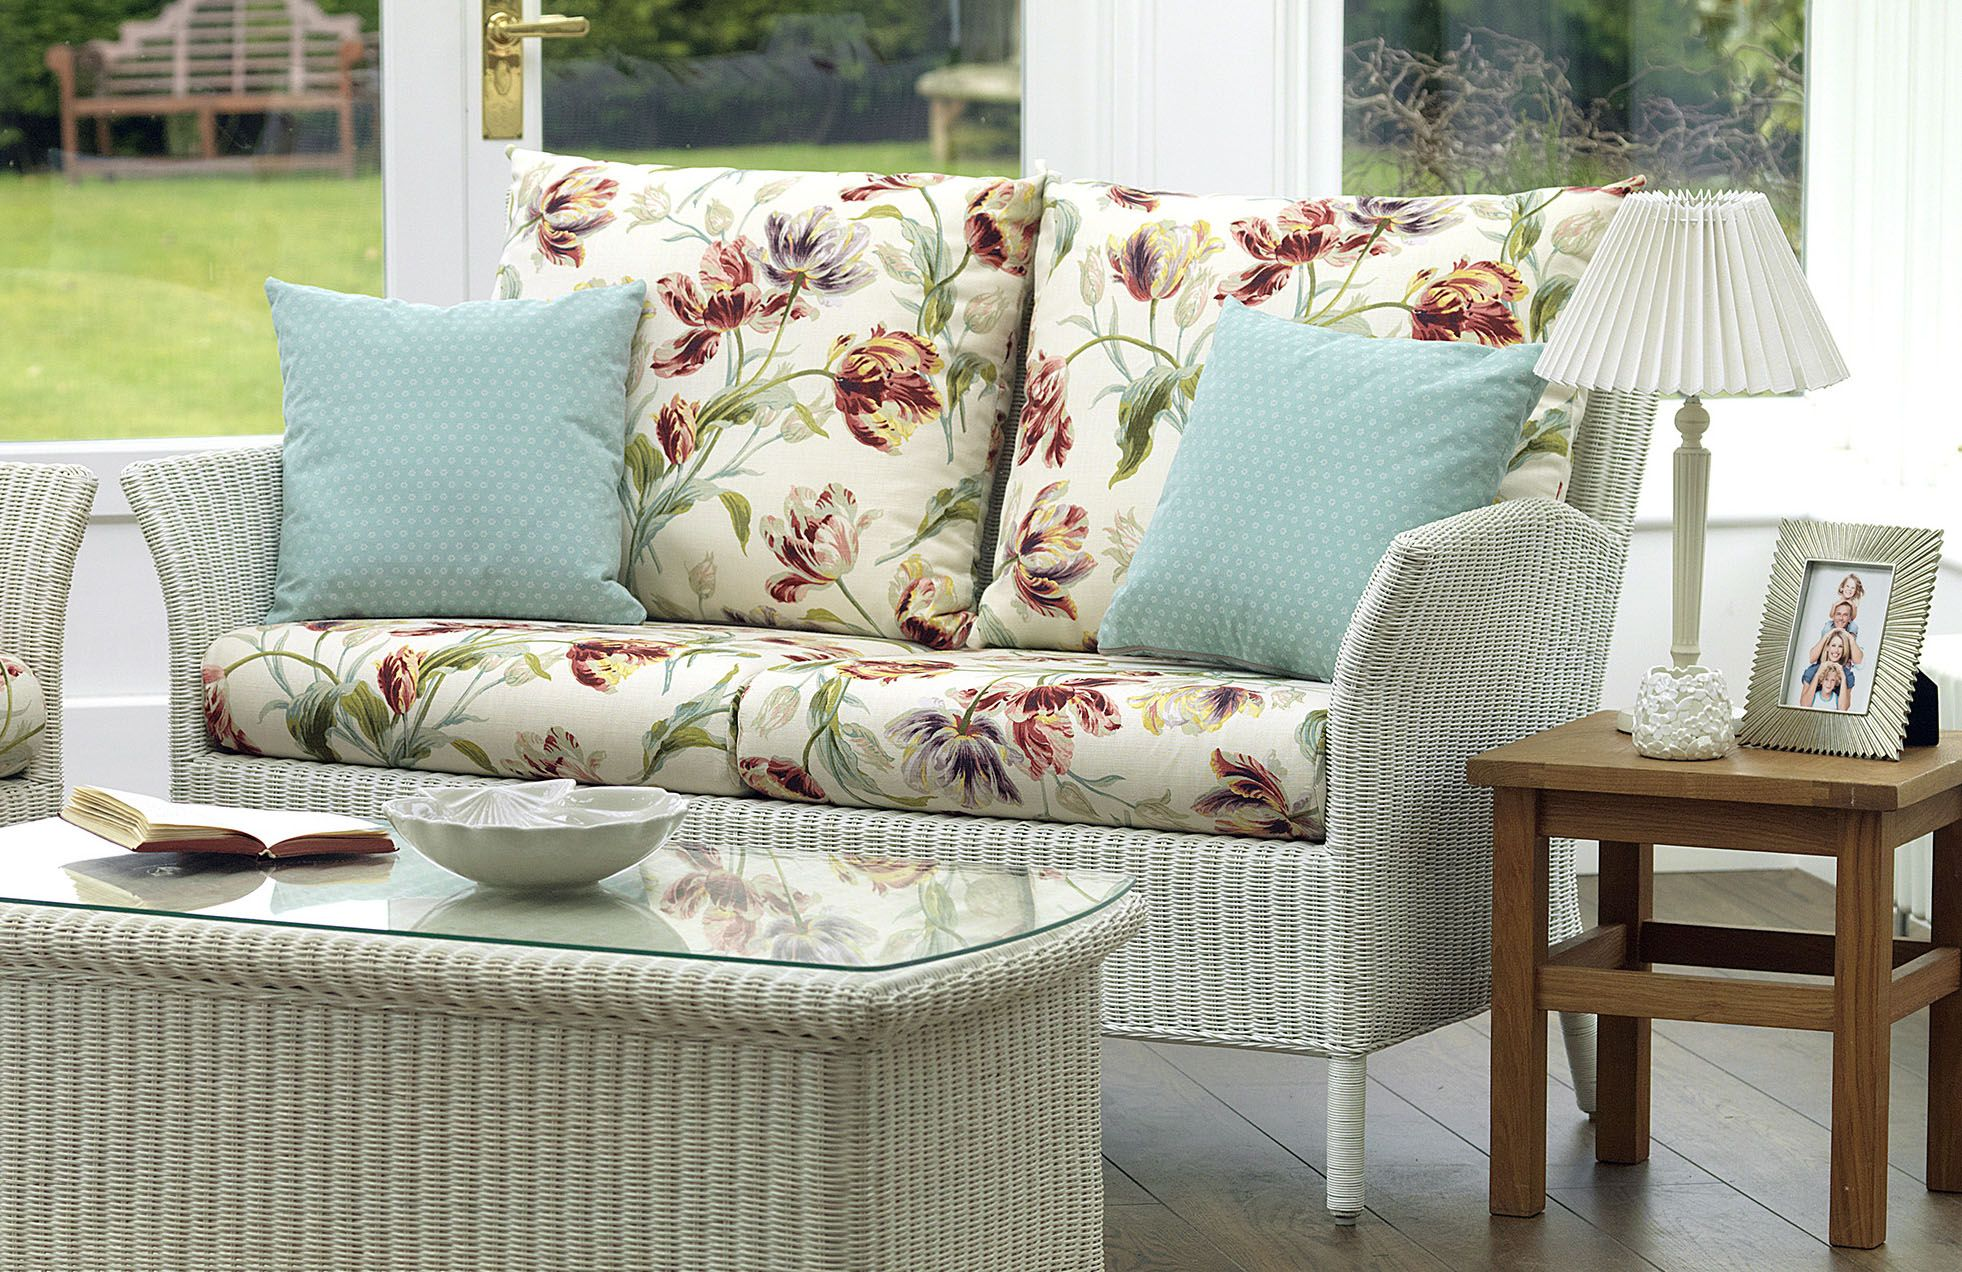 Merveilleux Conservatory Furniture White   Google Search